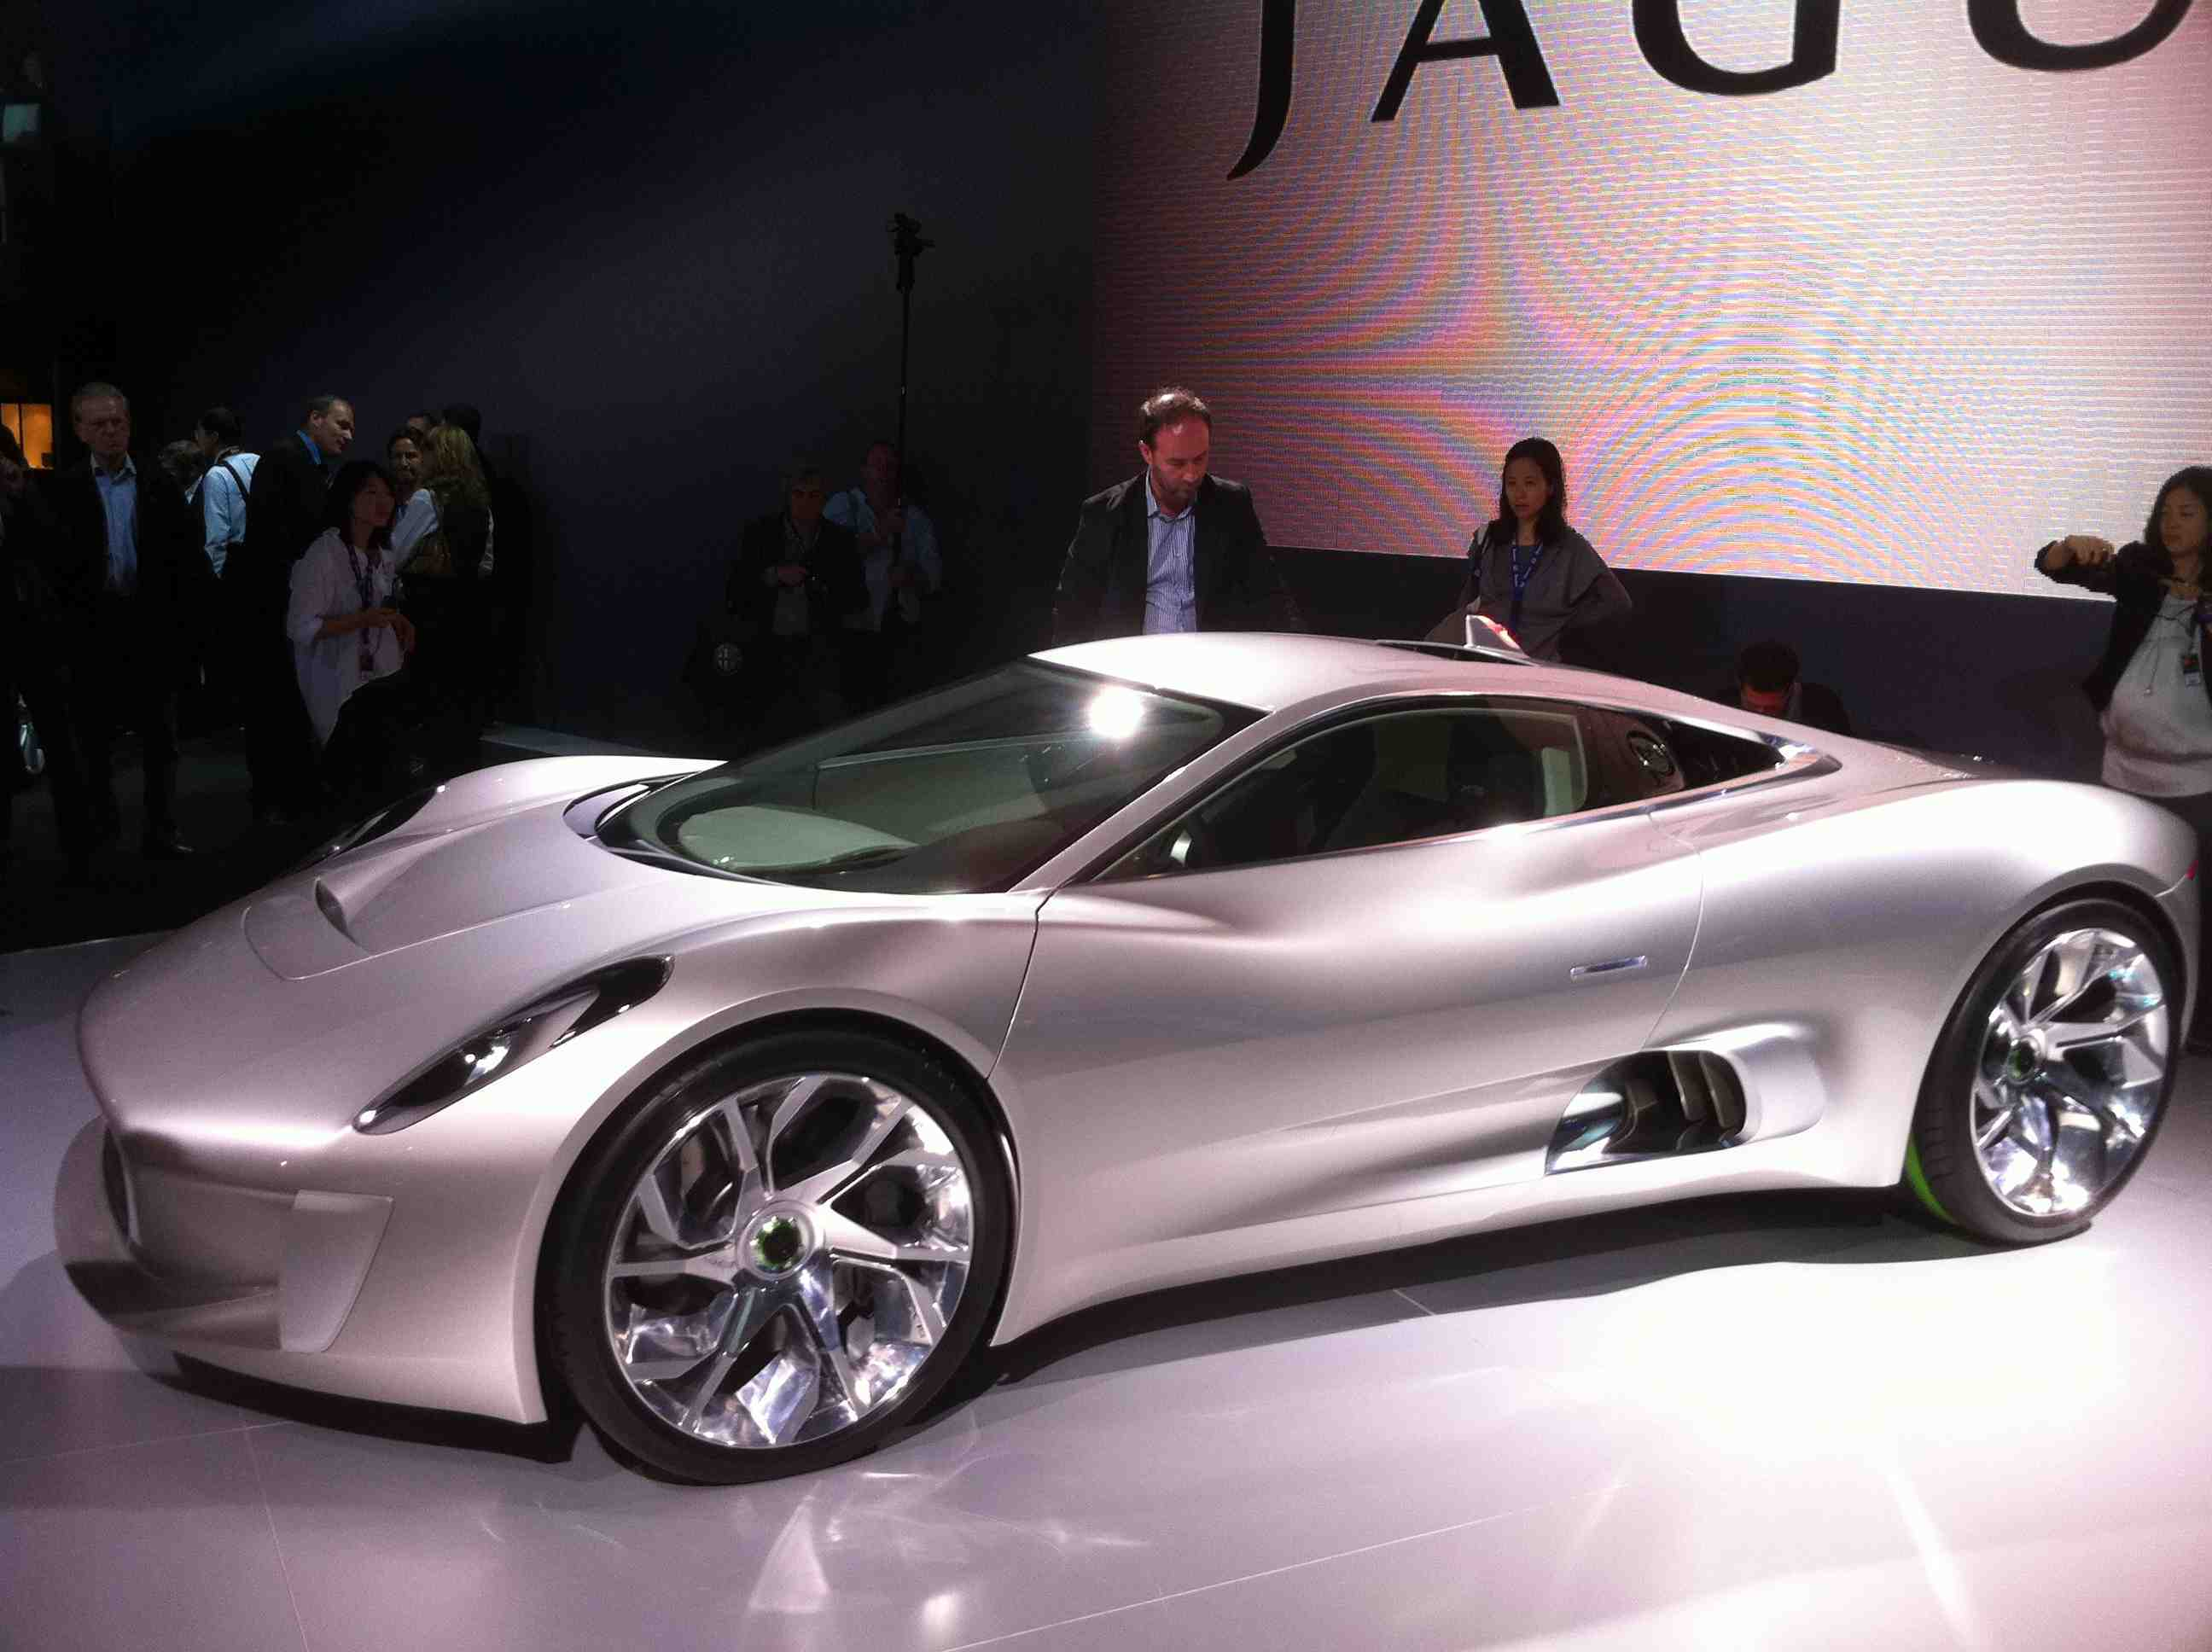 Jaguar C-X75 Concept at the Paris Auto Show